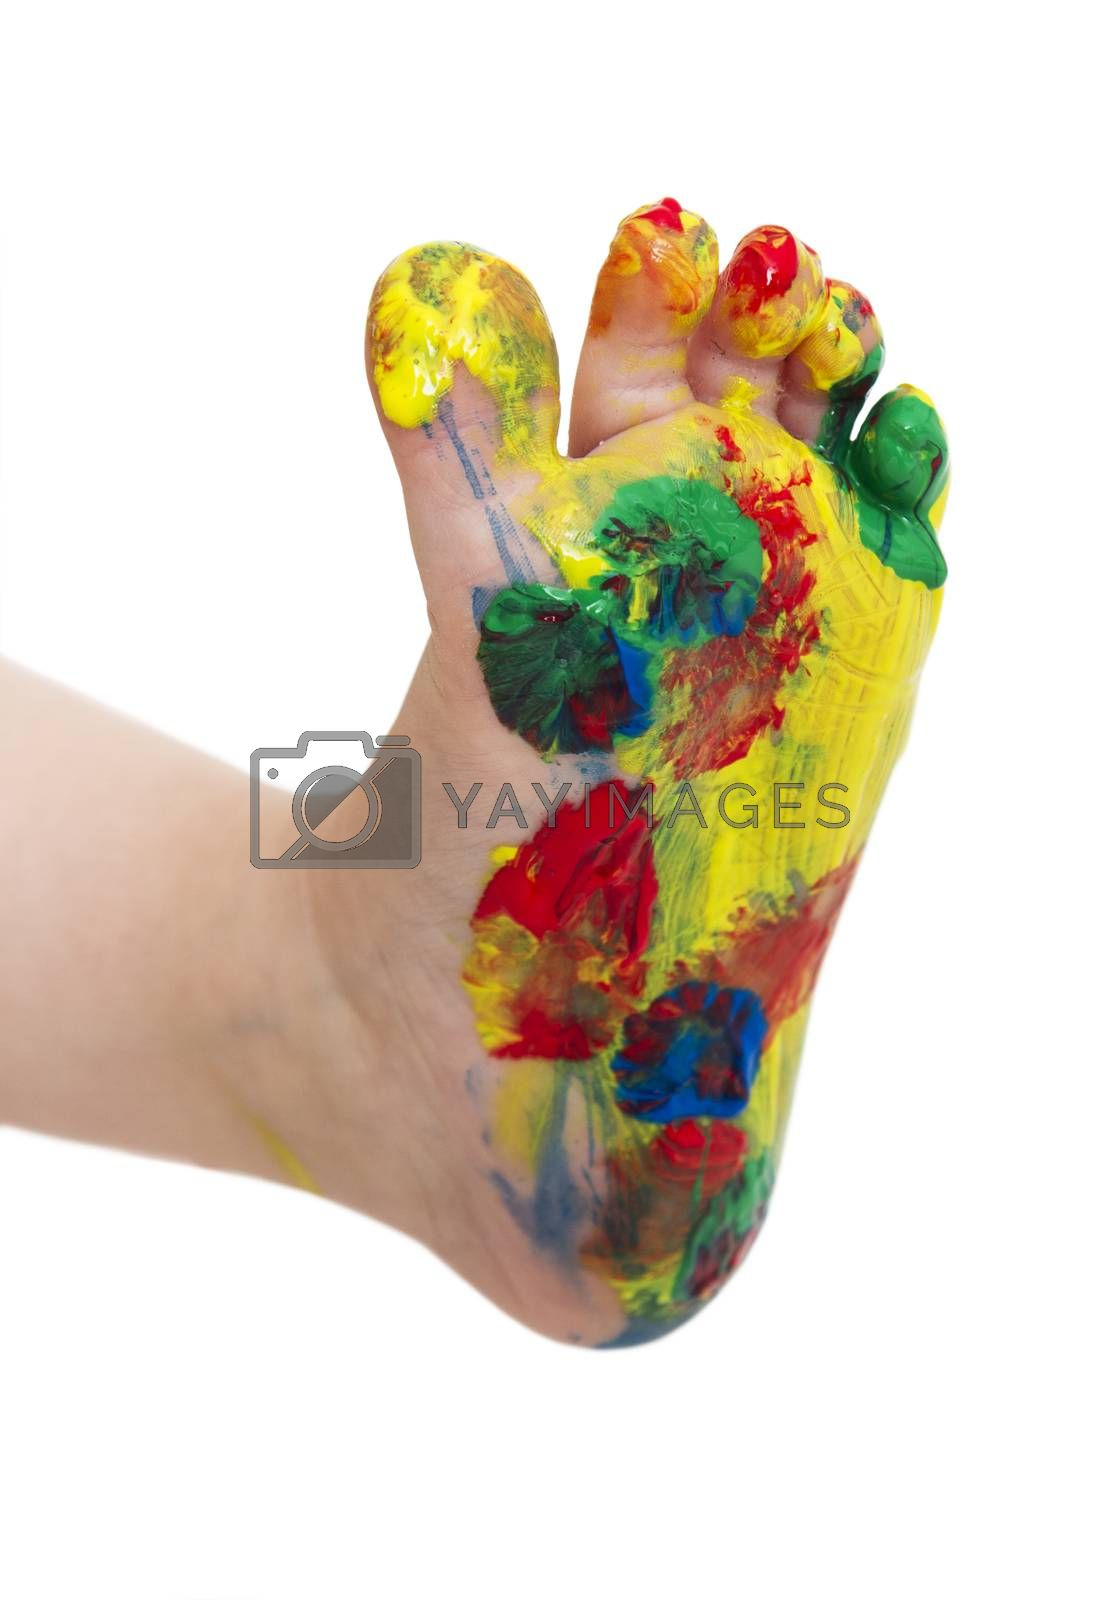 Royalty free image of colored feet from young child by gewoldi